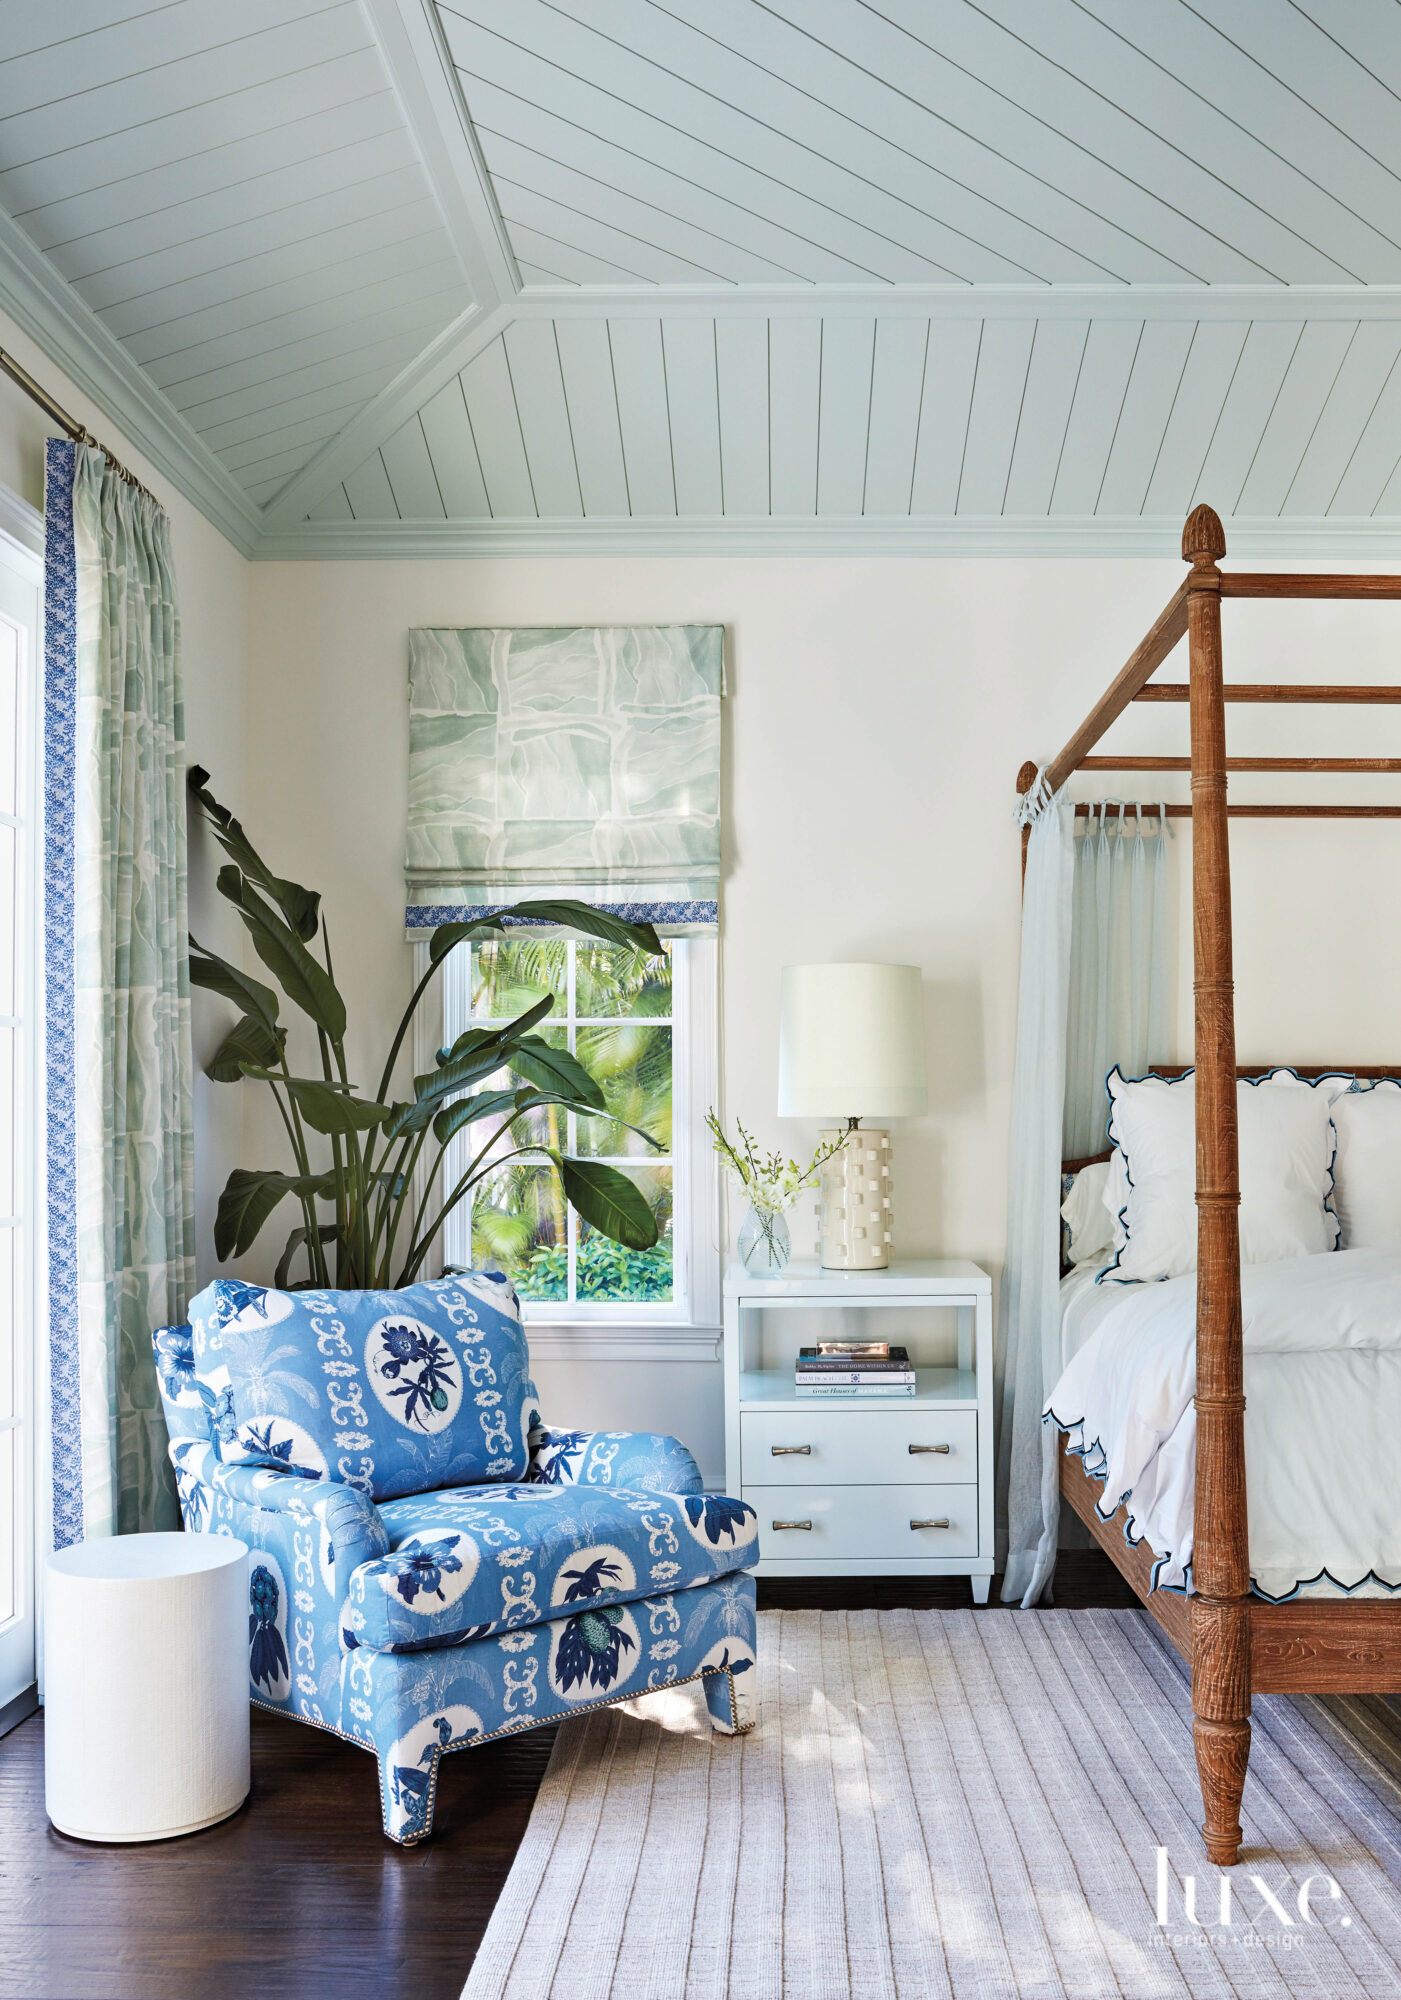 Bedroom with blue armchair and...